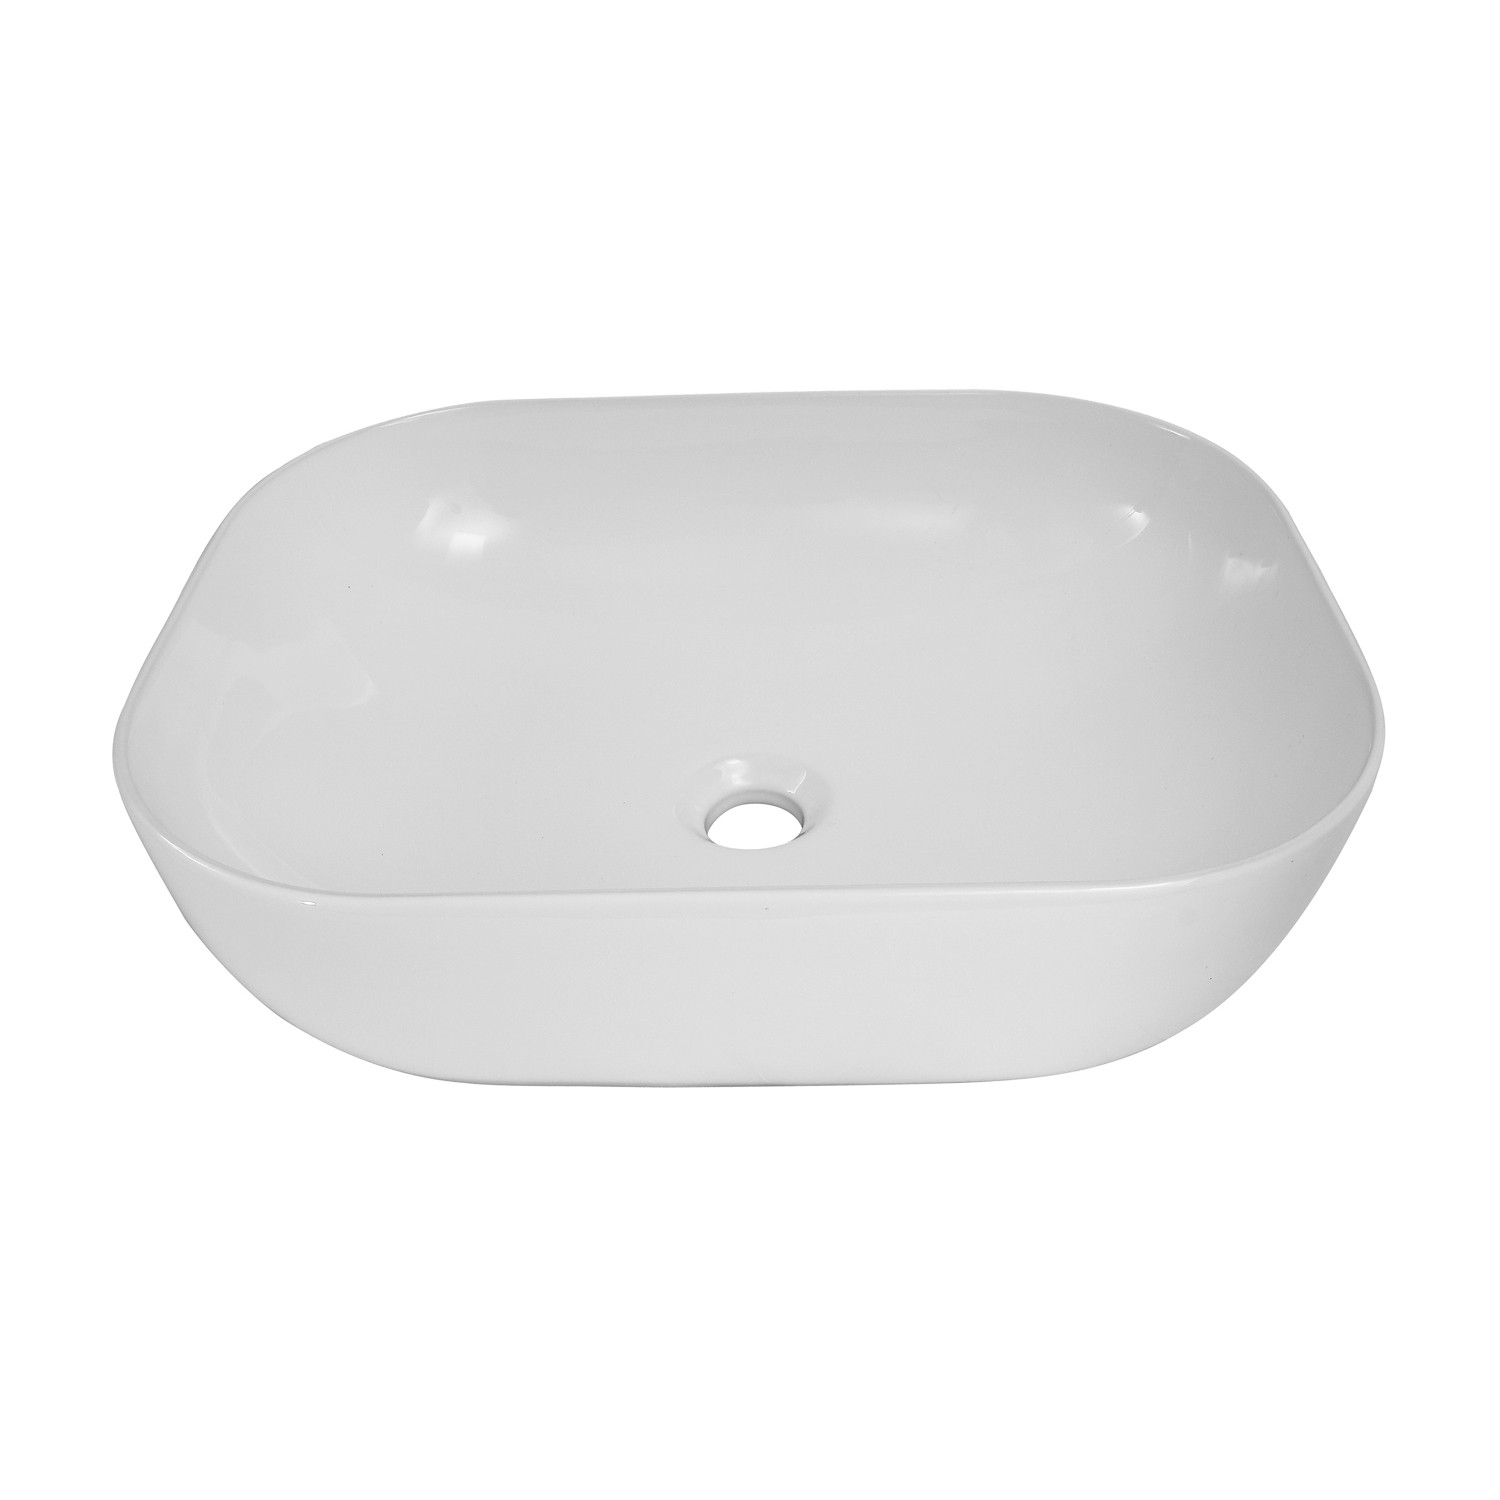 Barclay 4 450wh Kendra 19 1 2 Inch Single Basin Above Counter Bathroom Sink White 4 450wh 4450wh